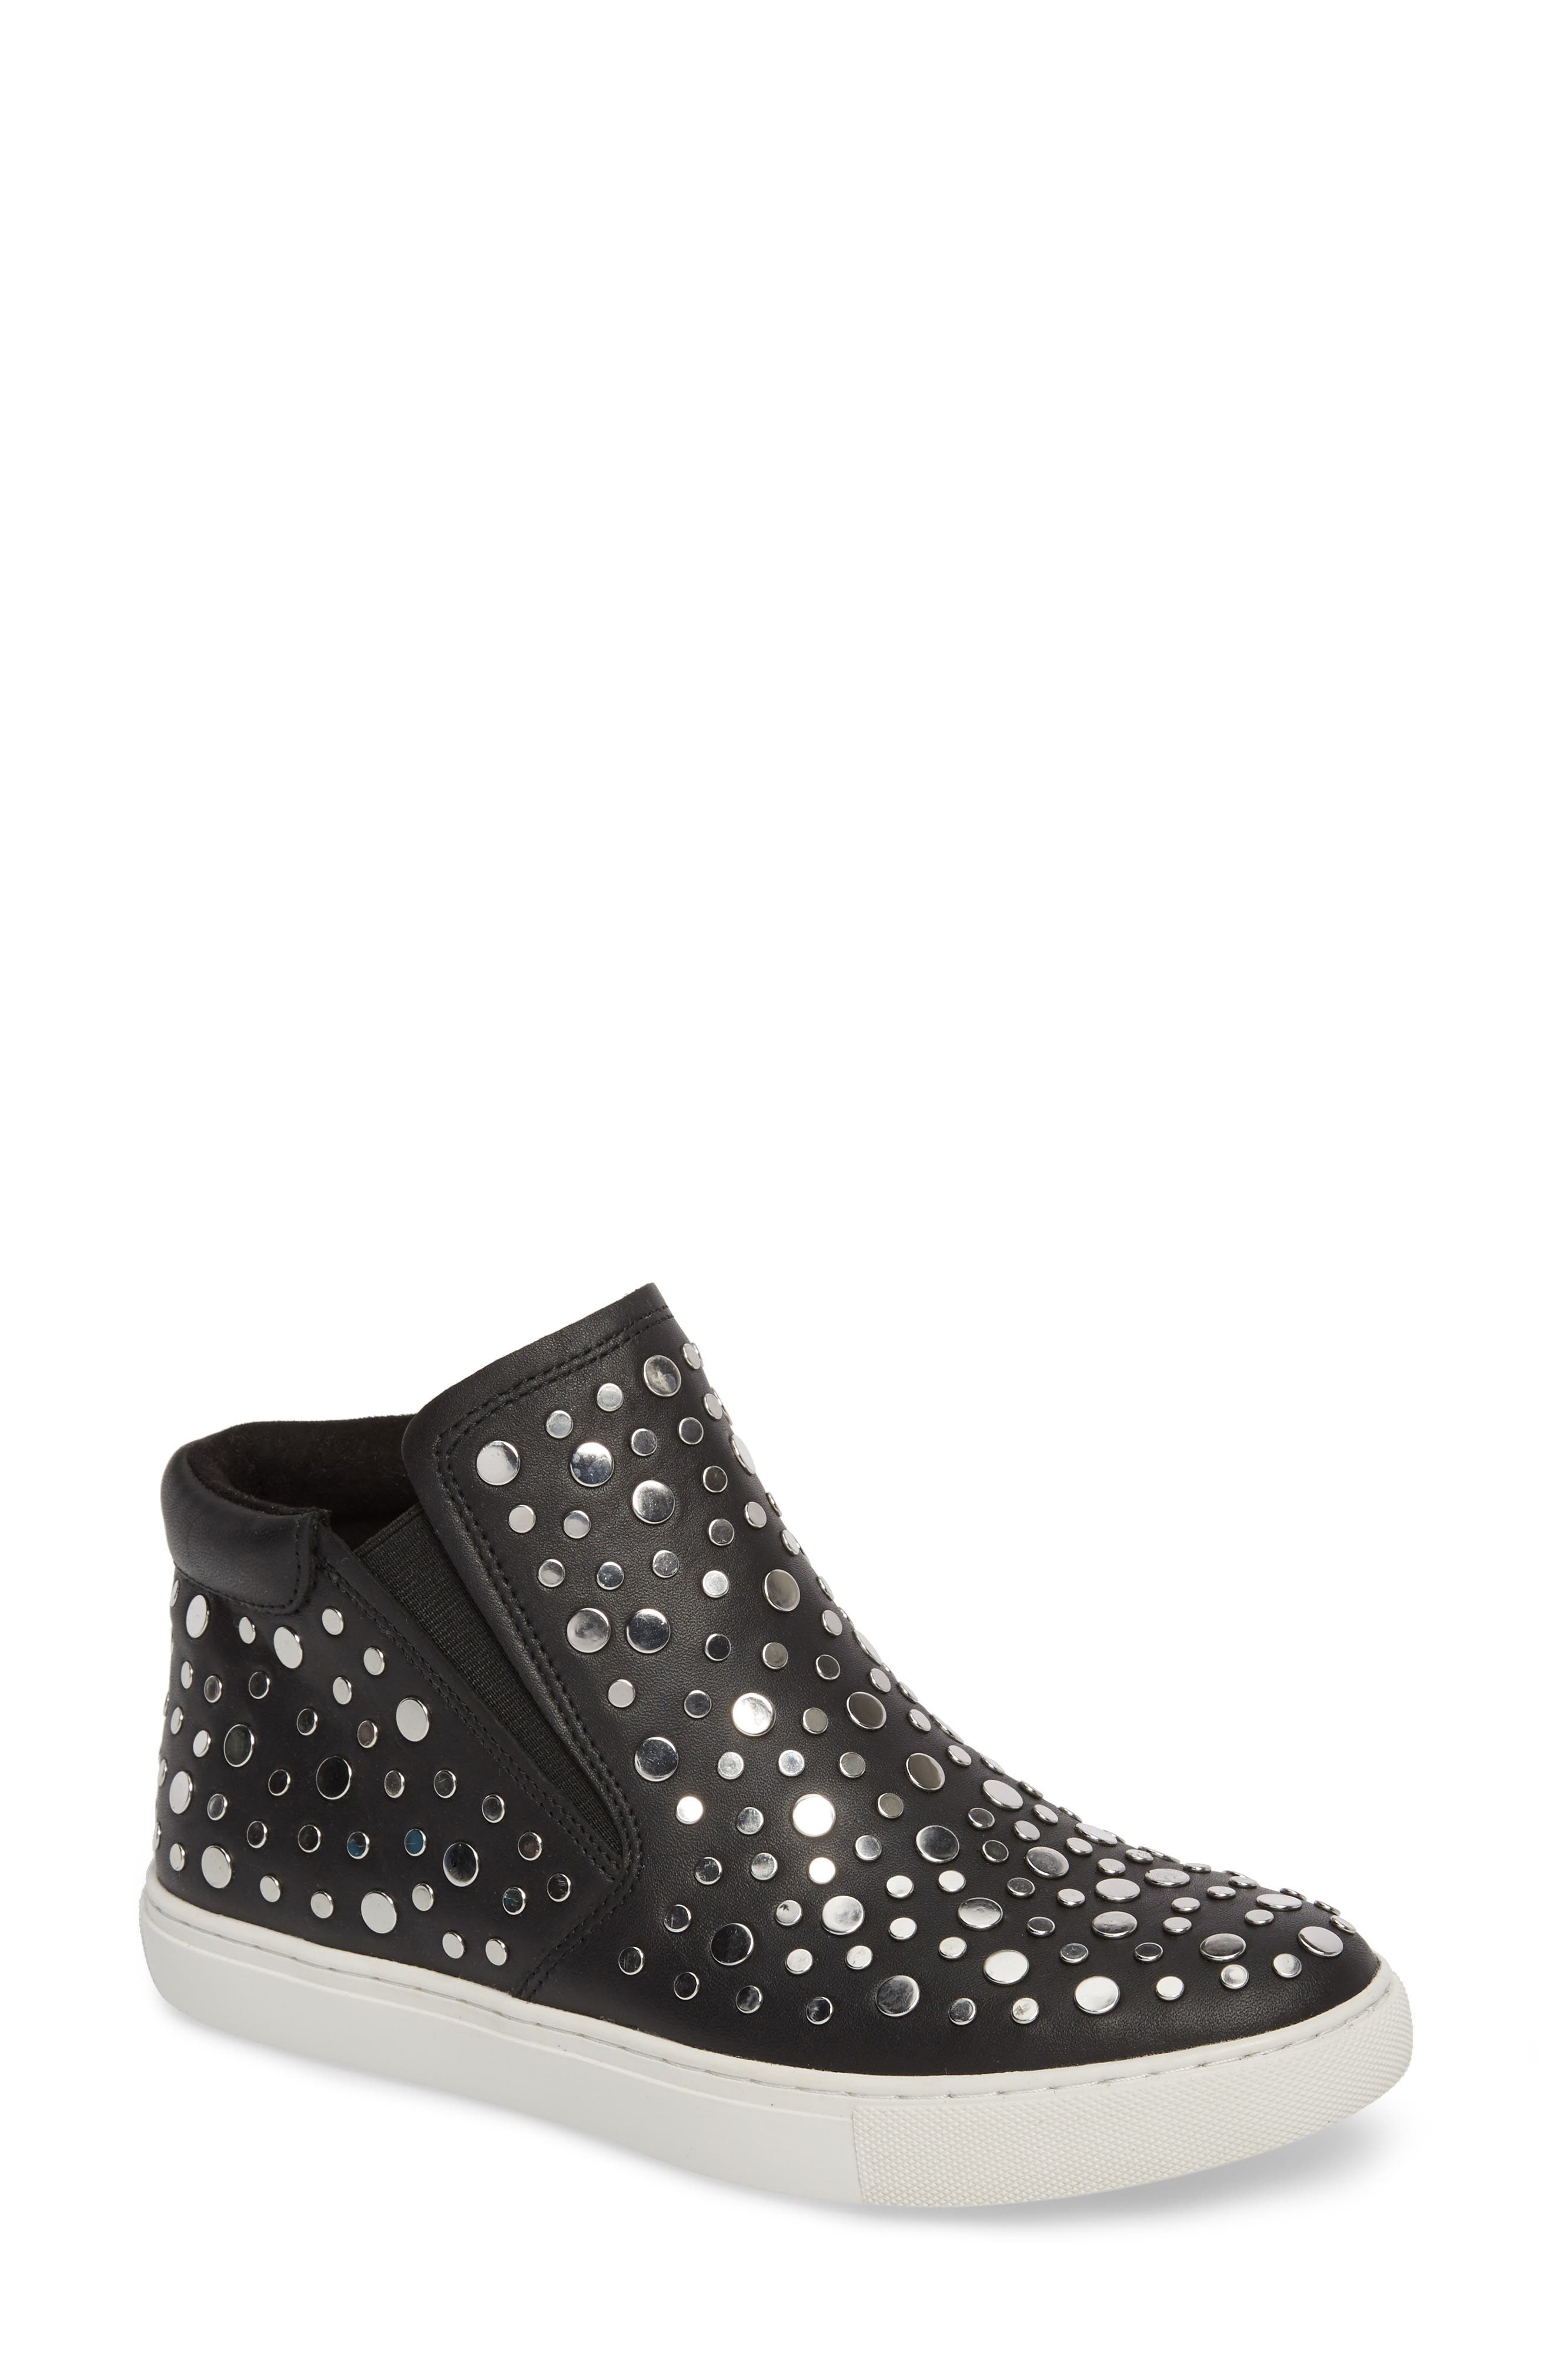 Kalvin Studded High Top Sneaker,                         Main,                         color, Black Leather